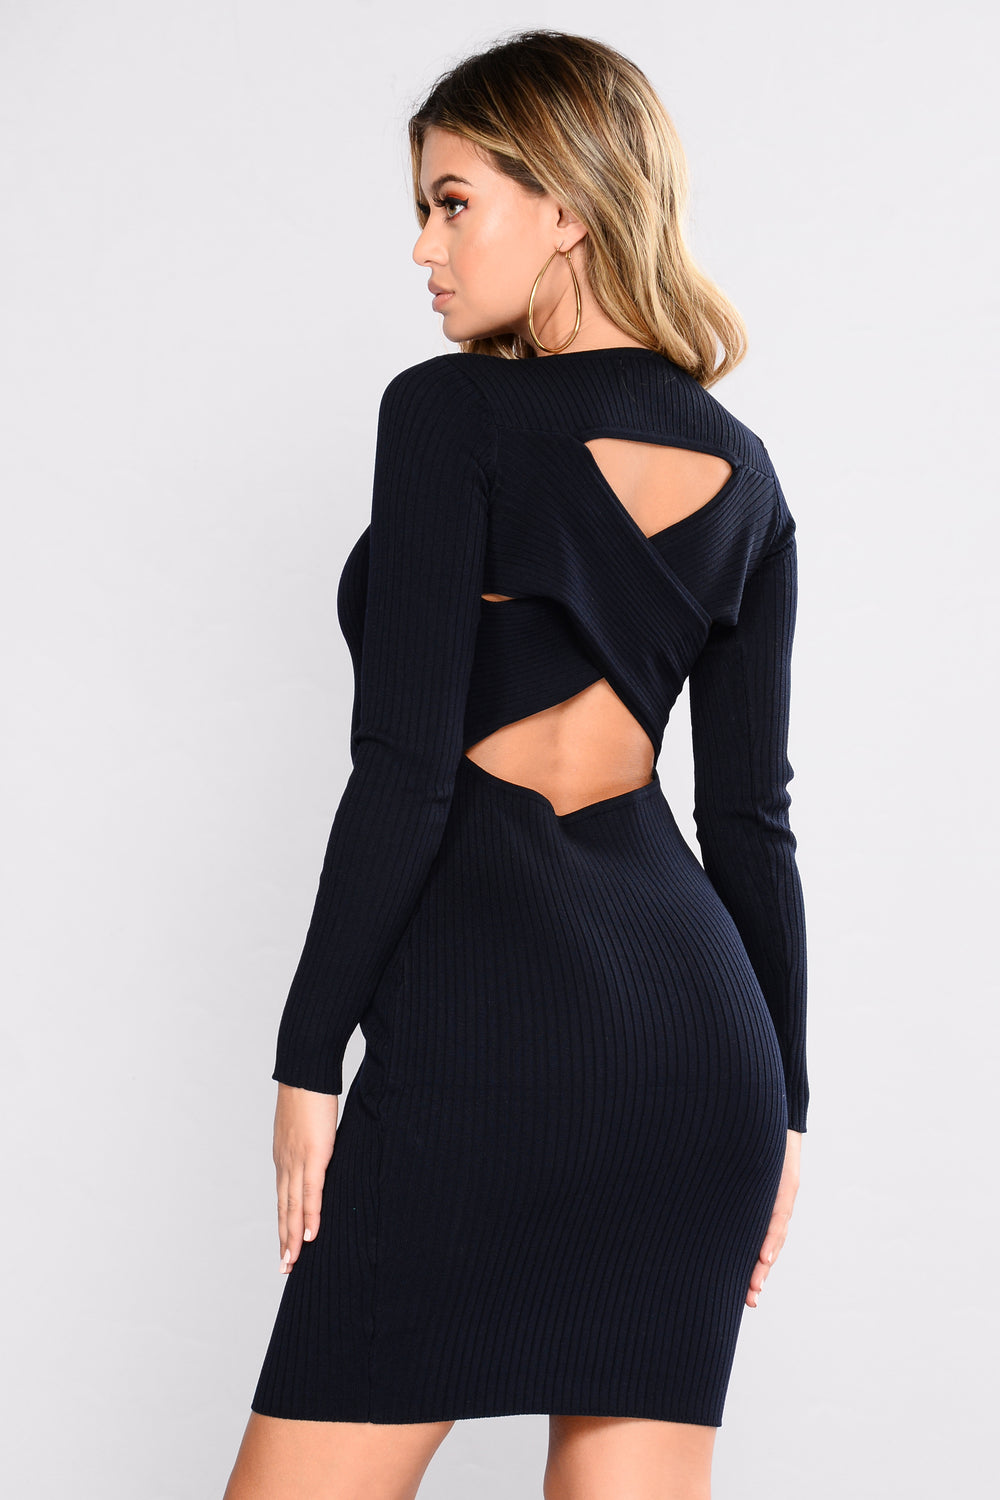 Zayla Knit Dress - Navy